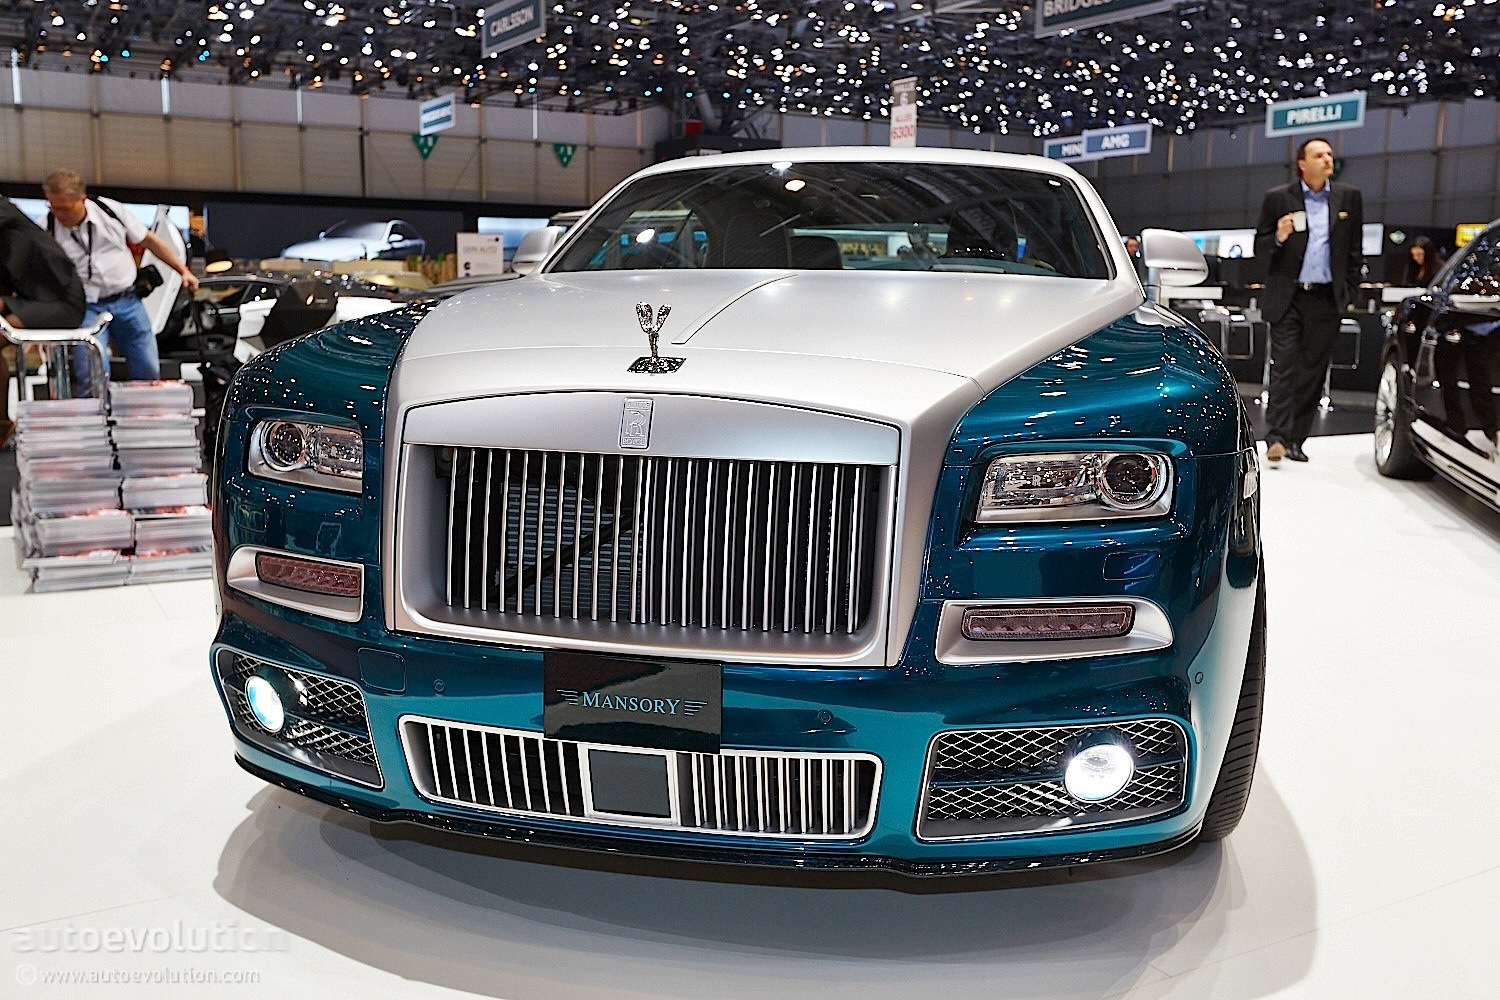 royce rolls wraith mansory cars opulence geneva logos automakers reasons why special autoevolution system models vehicle